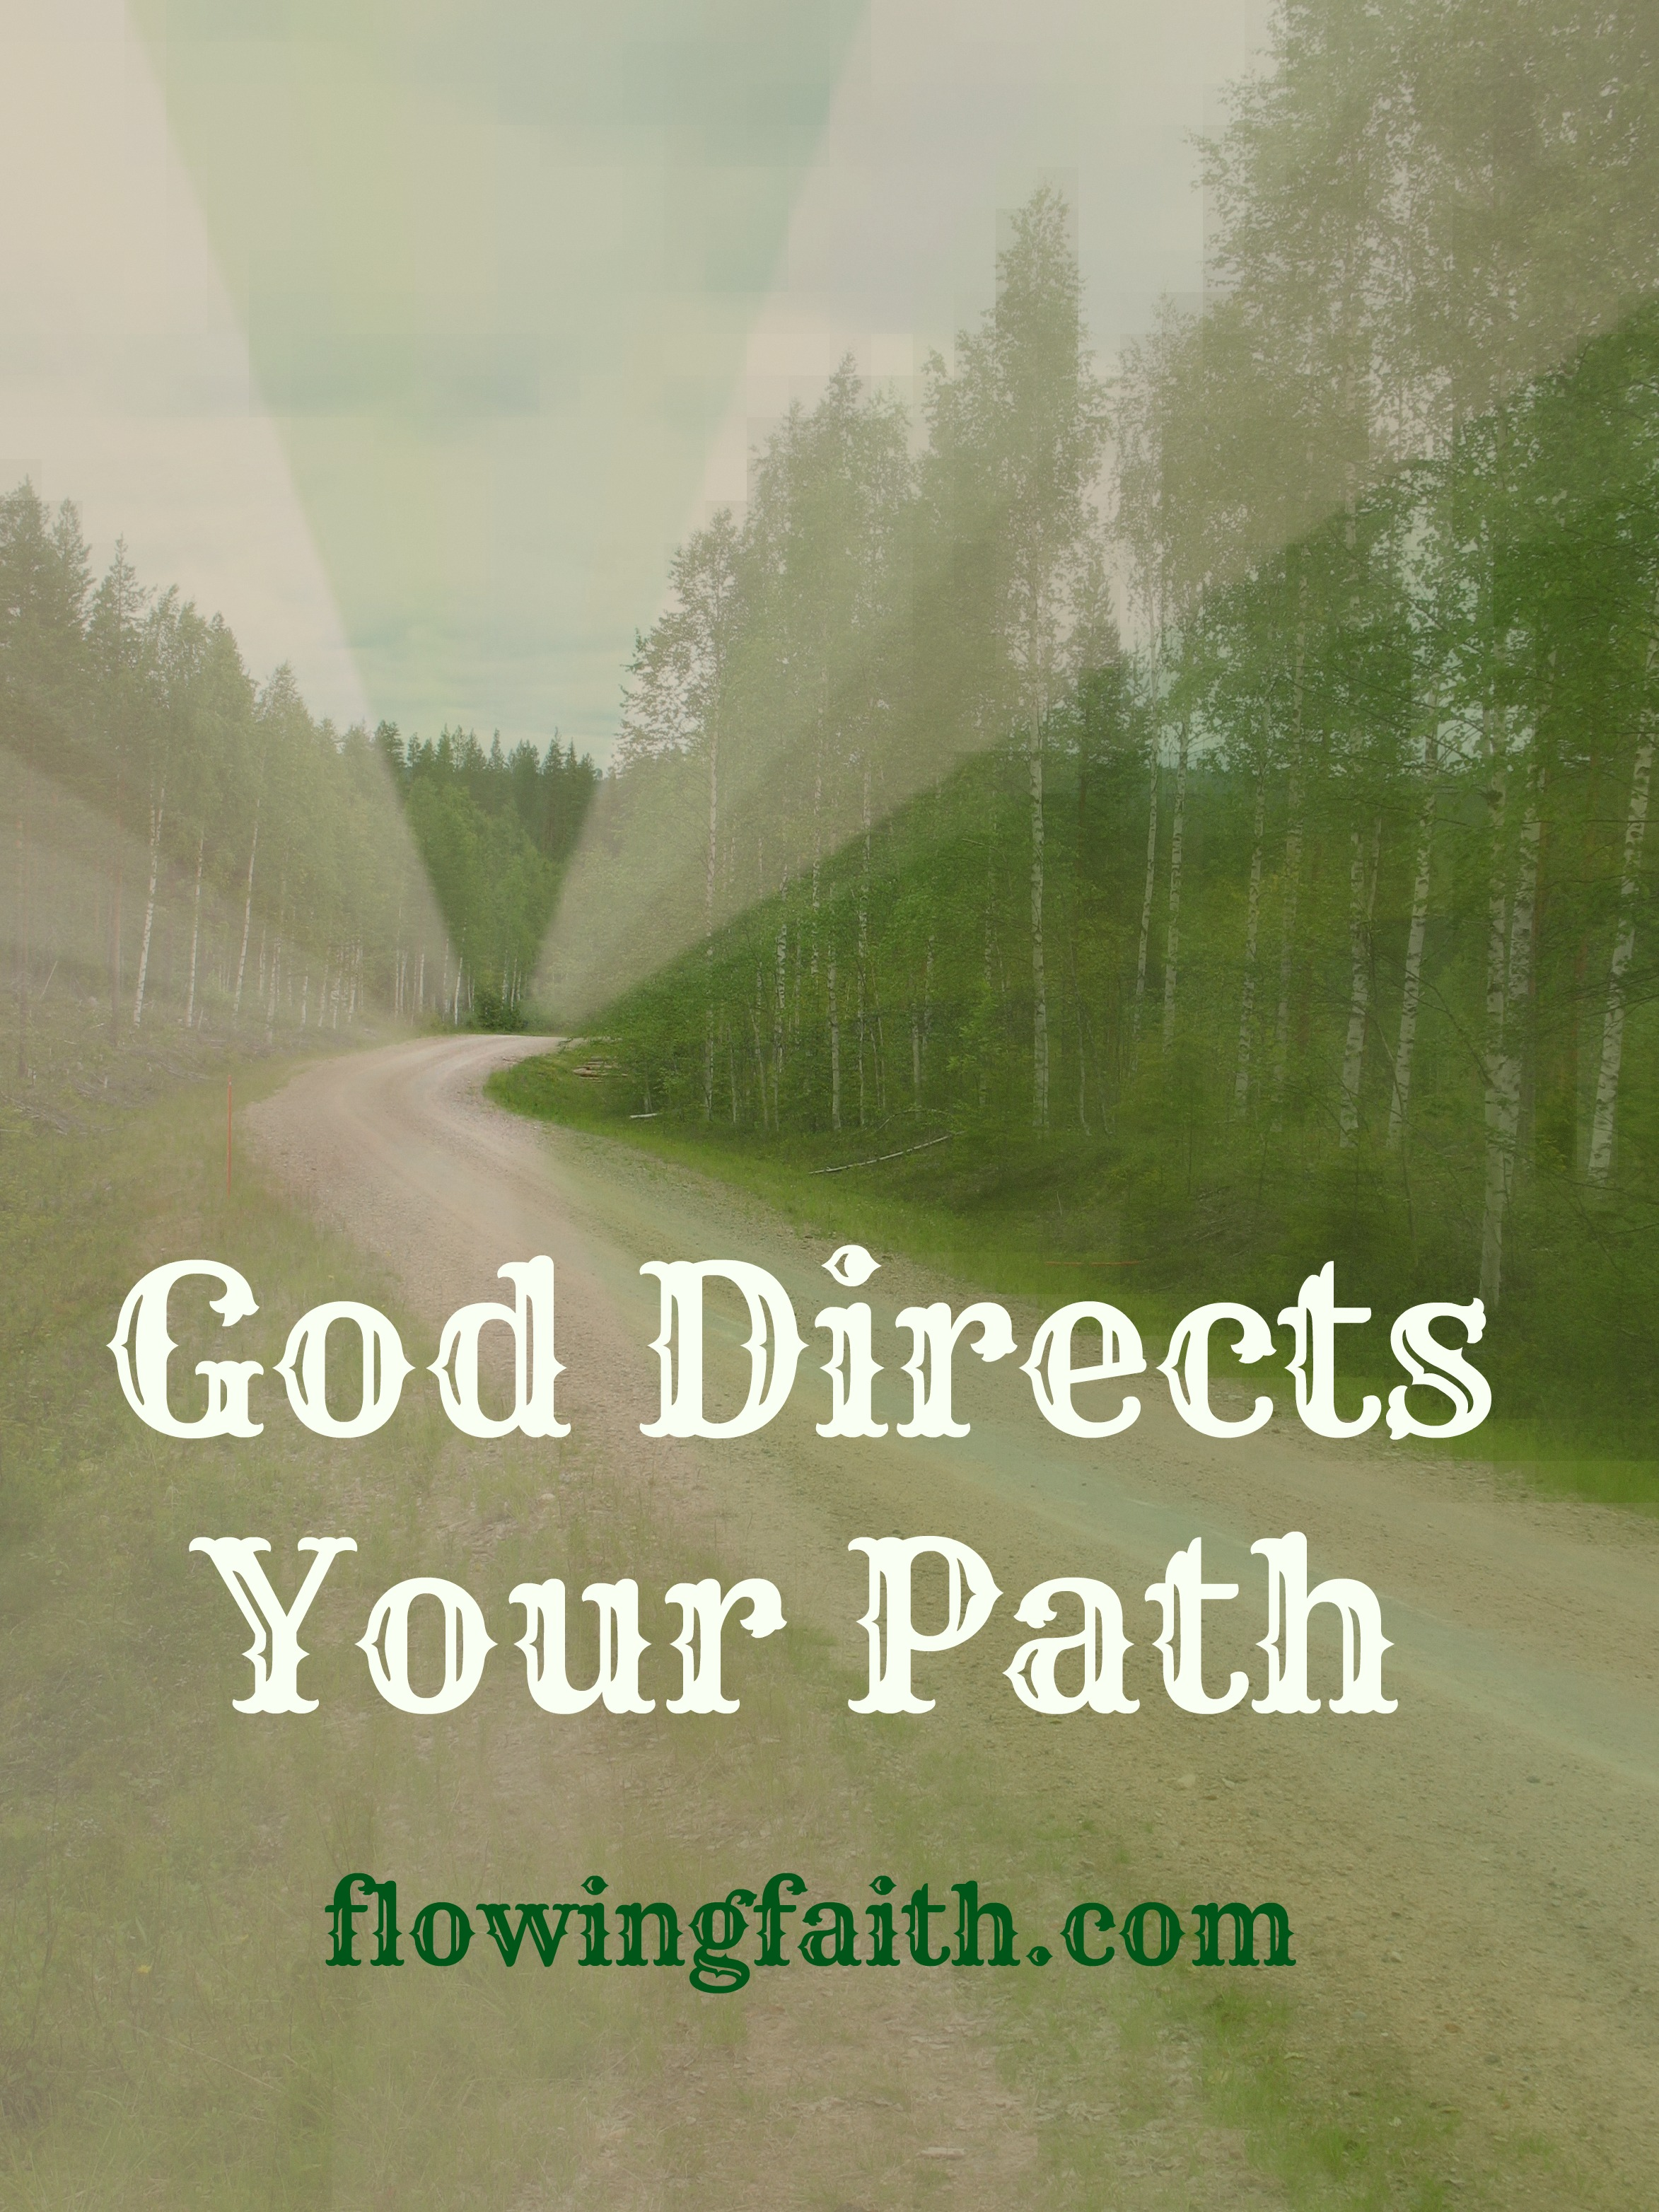 God directs your path